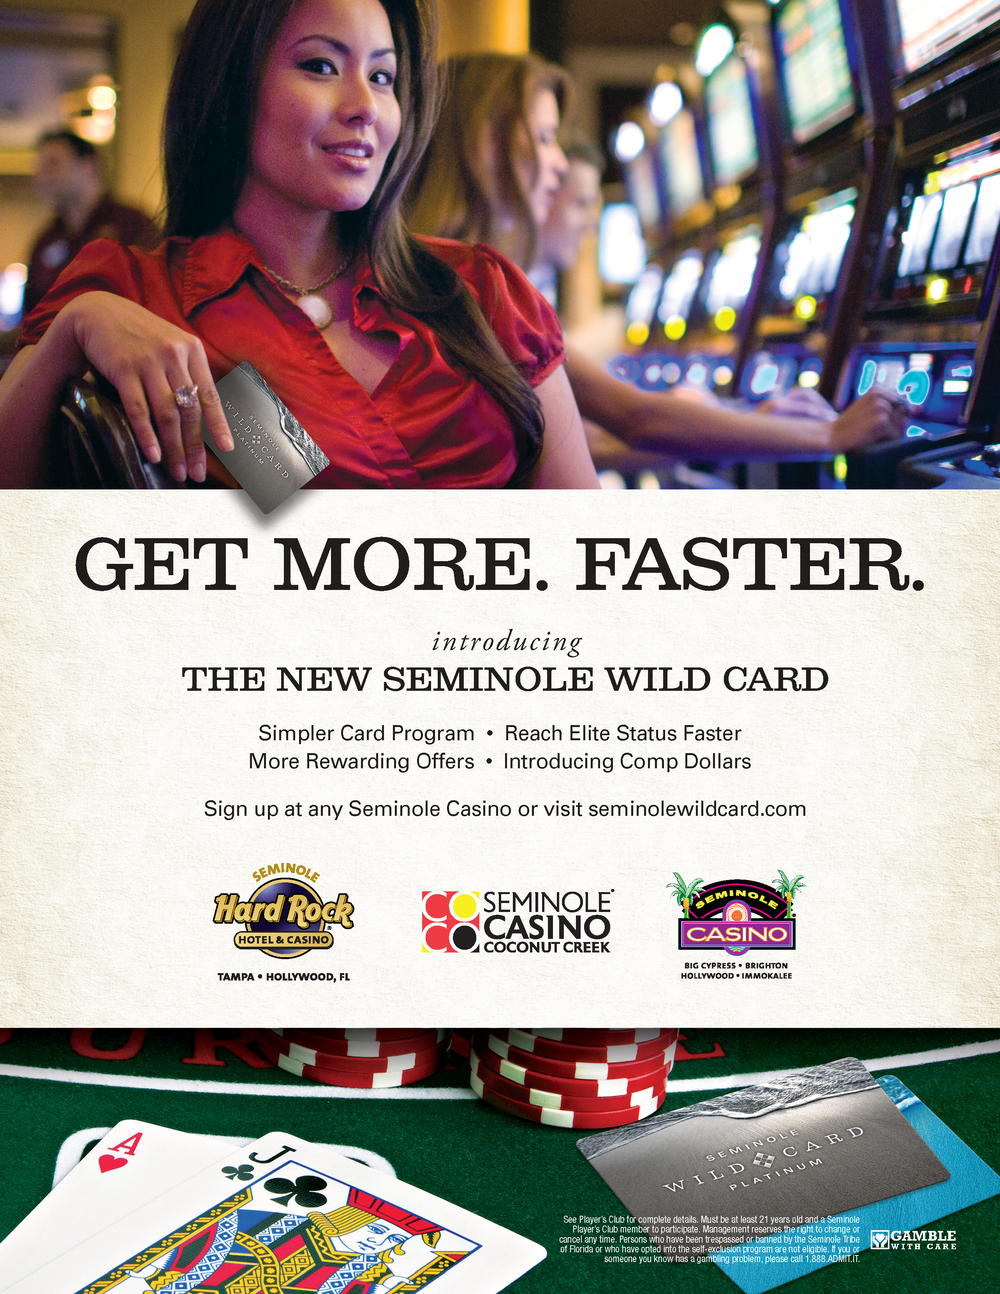 Print Ad, Wild Card Rebrand Creative Agency: 1 Trick Pony Client: Seminole Gaming  http://1trickpony.com/